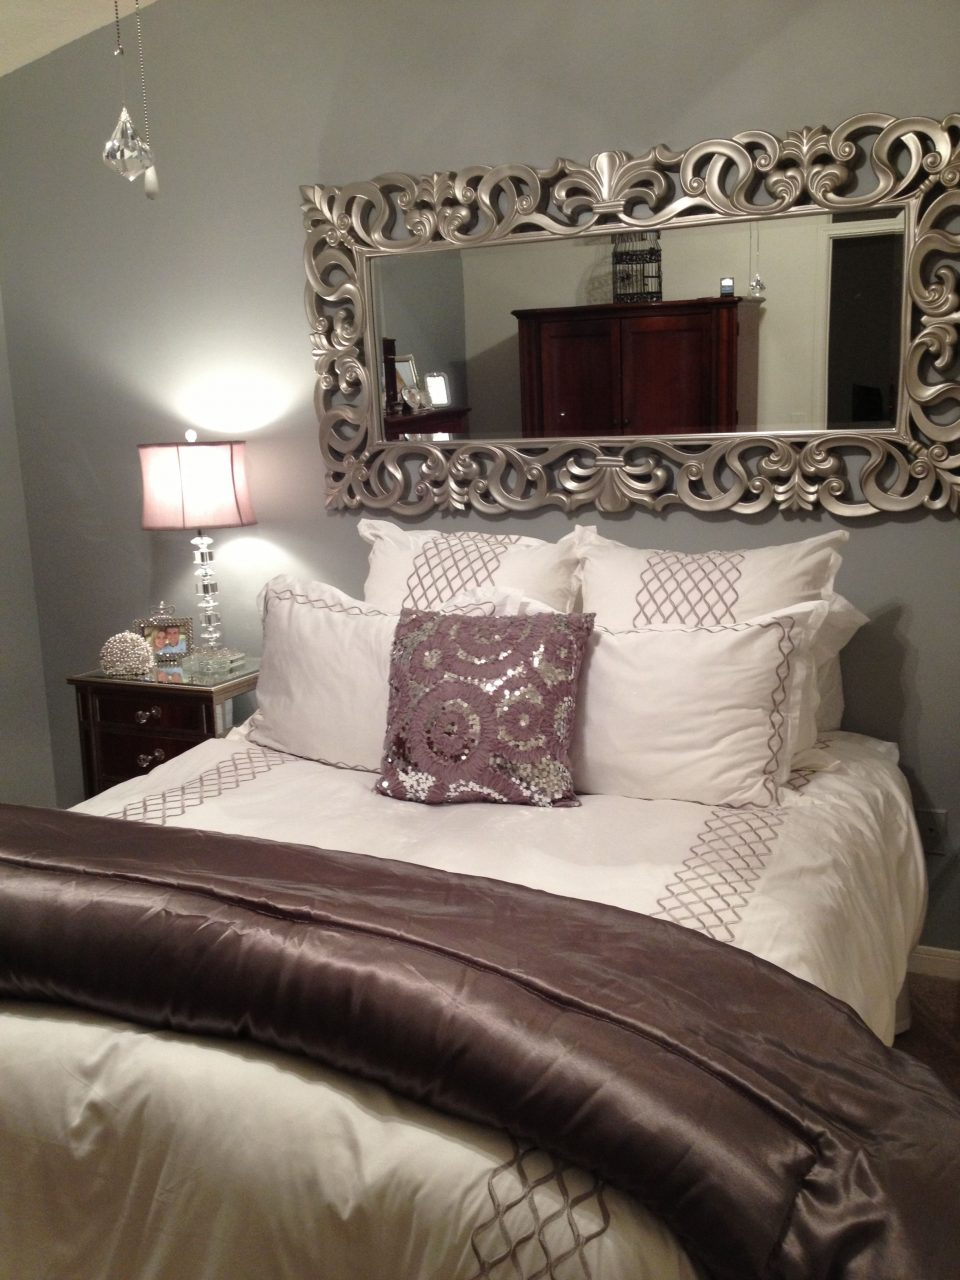 Home Decor Bedroom Decor Nice Use Of The Mirror To Take Away From